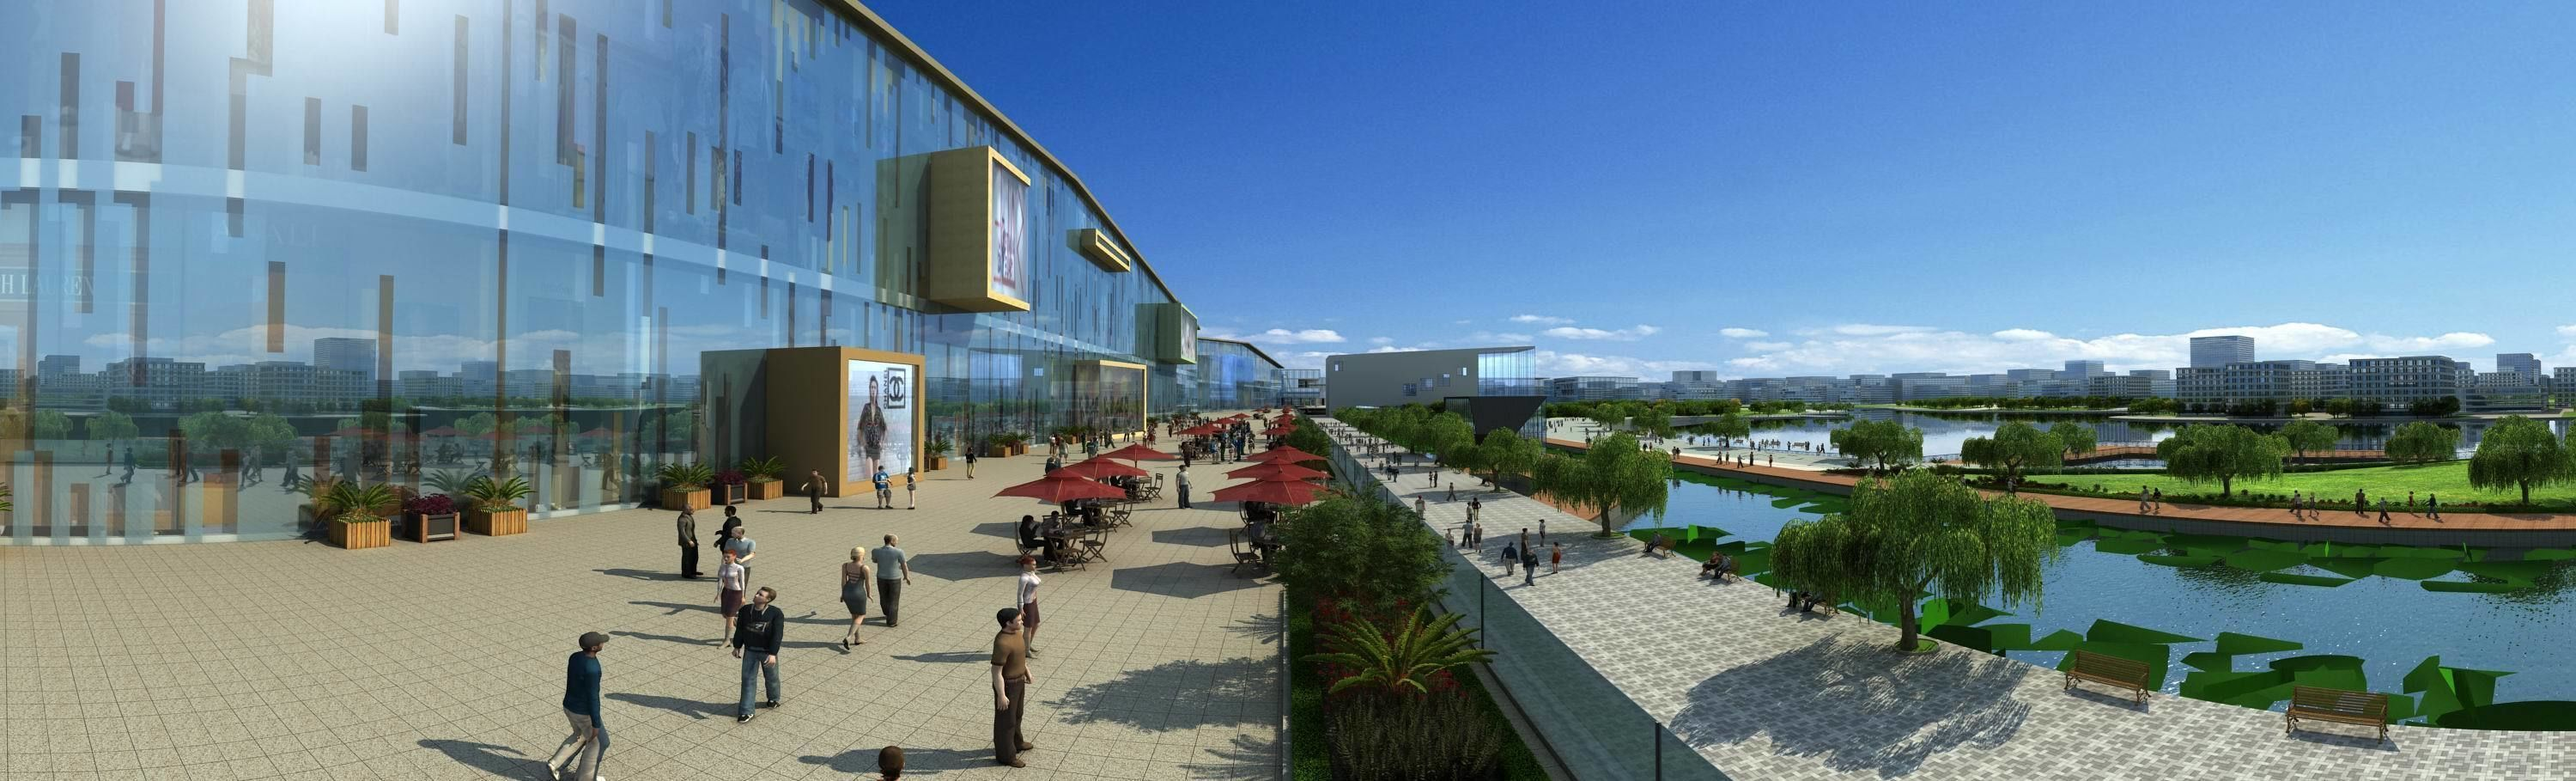 Riverside Large-scale Leisure Shopping Mall